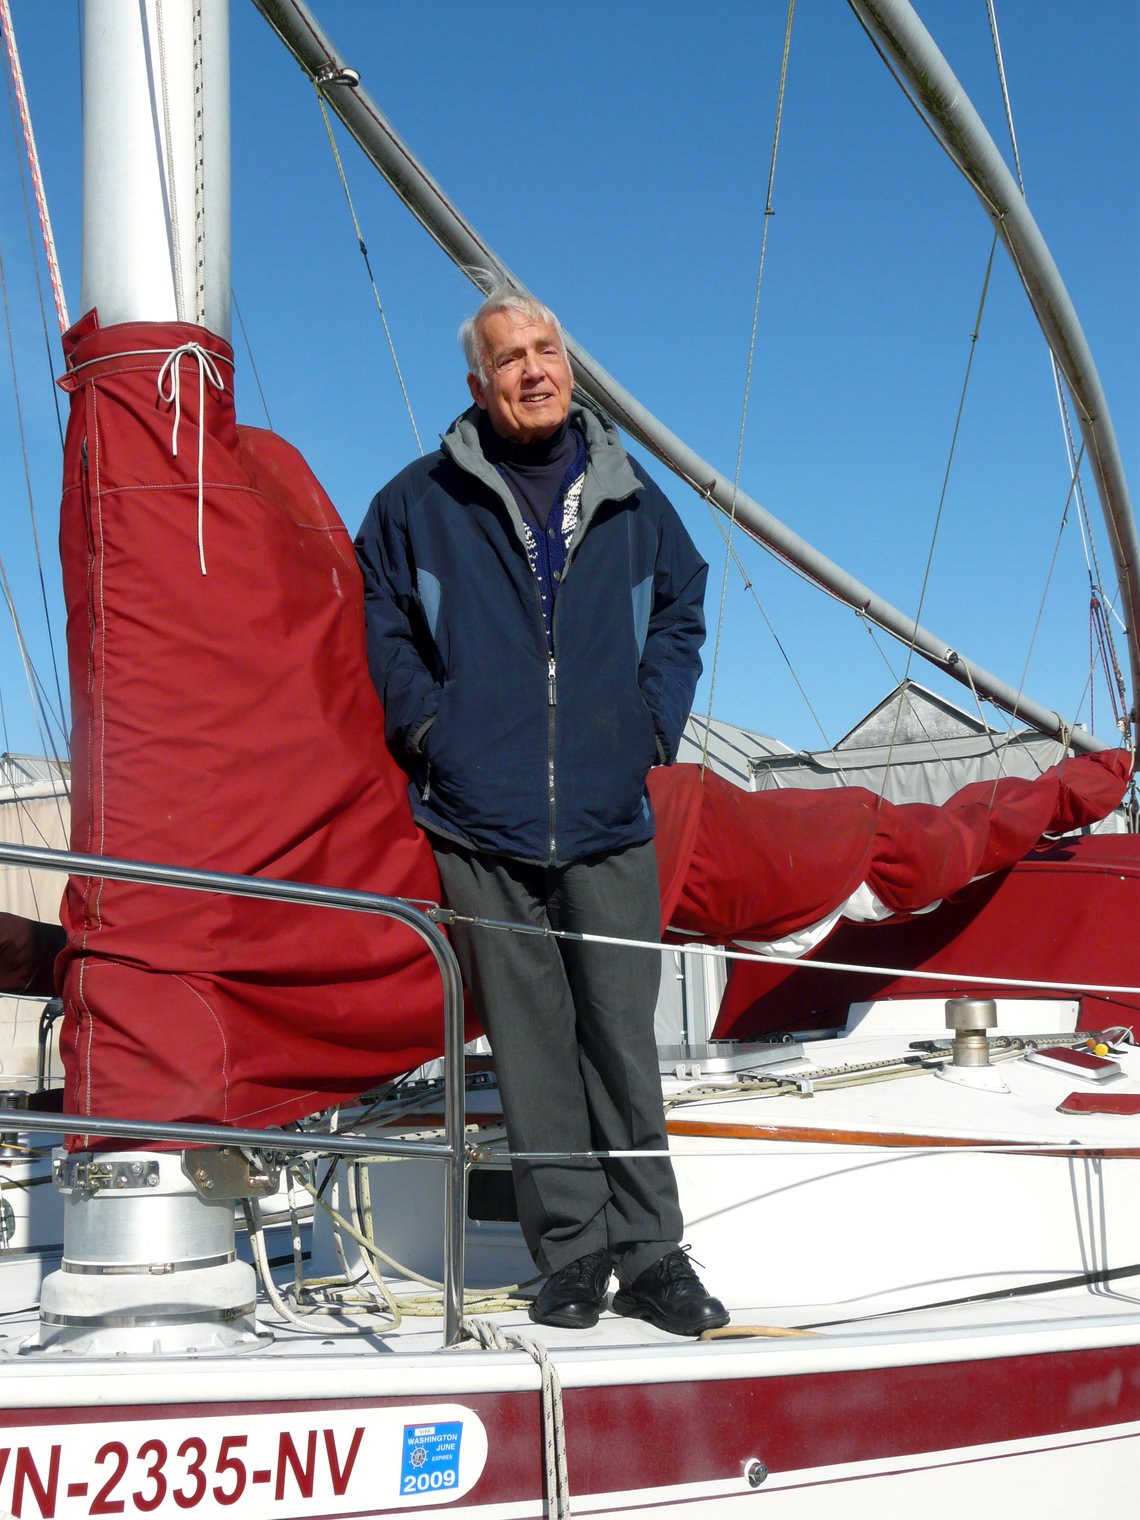 Justice Utter on his sailboat in an undated photo.